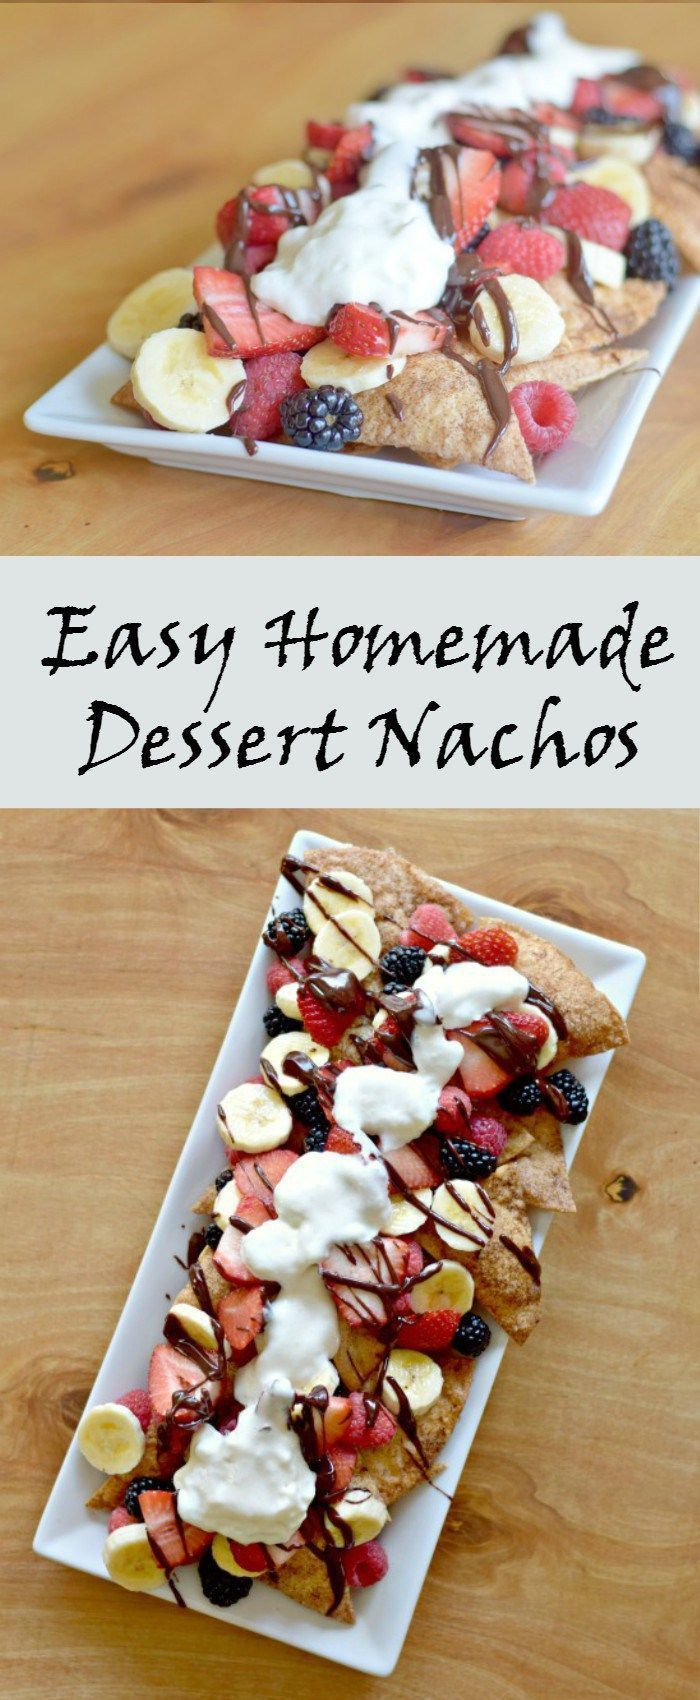 Easy homemade dessert nachos recipe with cinnamon sugar tortilla chips Mexican chocolate sauce, and fresh fruit for a lighter and delicious treat. It's a naturally gluten free dessert. Make this easy dessert that's perfect for a potluck or Cinco de Mayo. Who doesn't love fruit dessert recipes?  #GoTortillaland AD